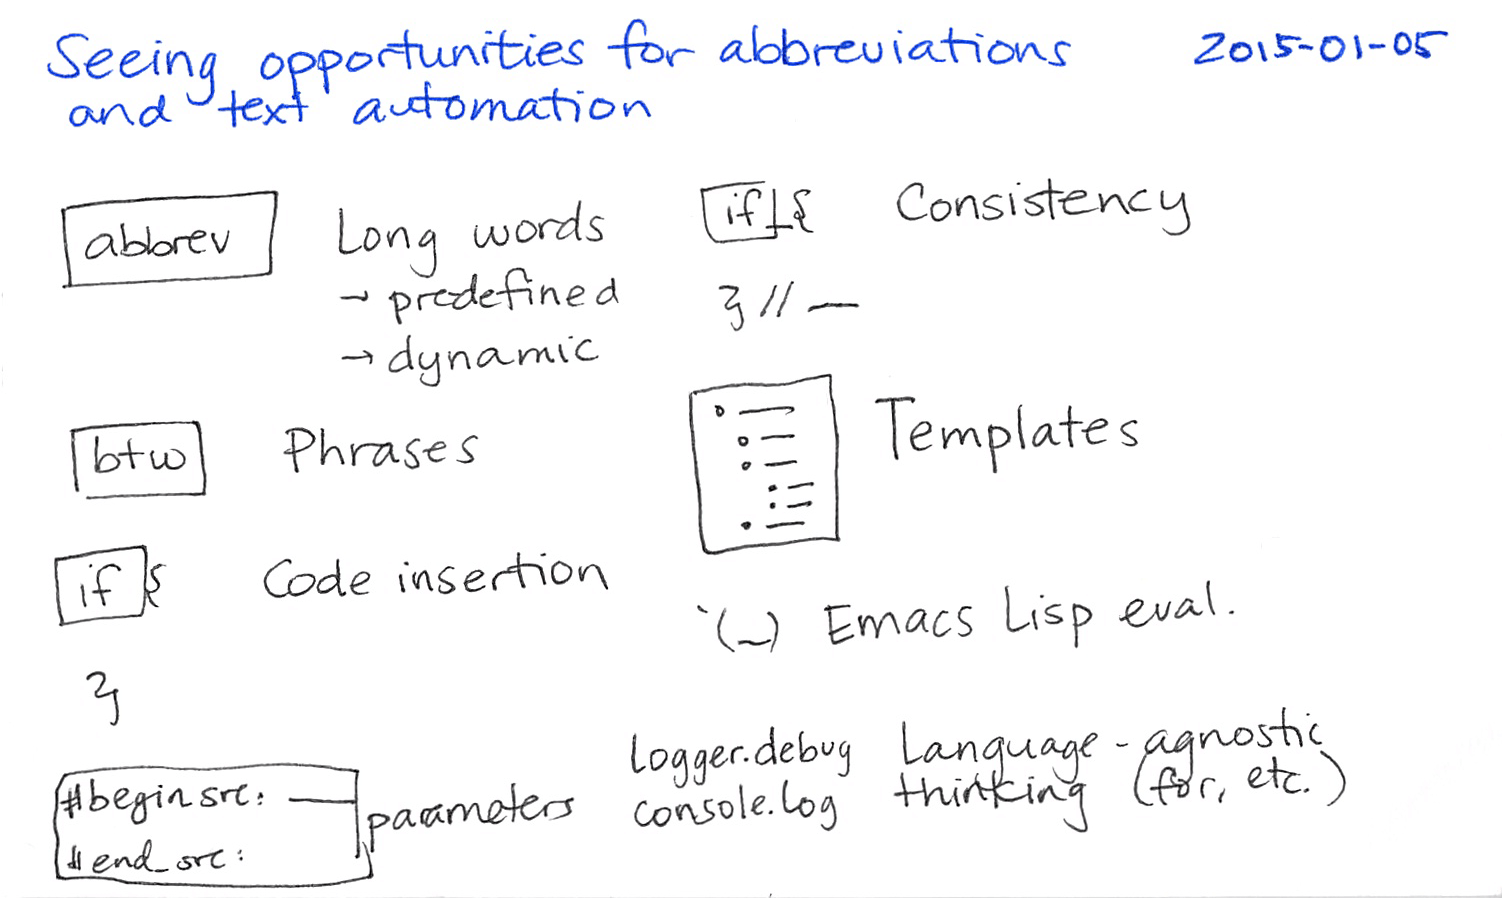 Developing emacs micro habits abbreviations and templates 2015 01 05 seeing opportunities for abbreviations and text automation index card altavistaventures Choice Image